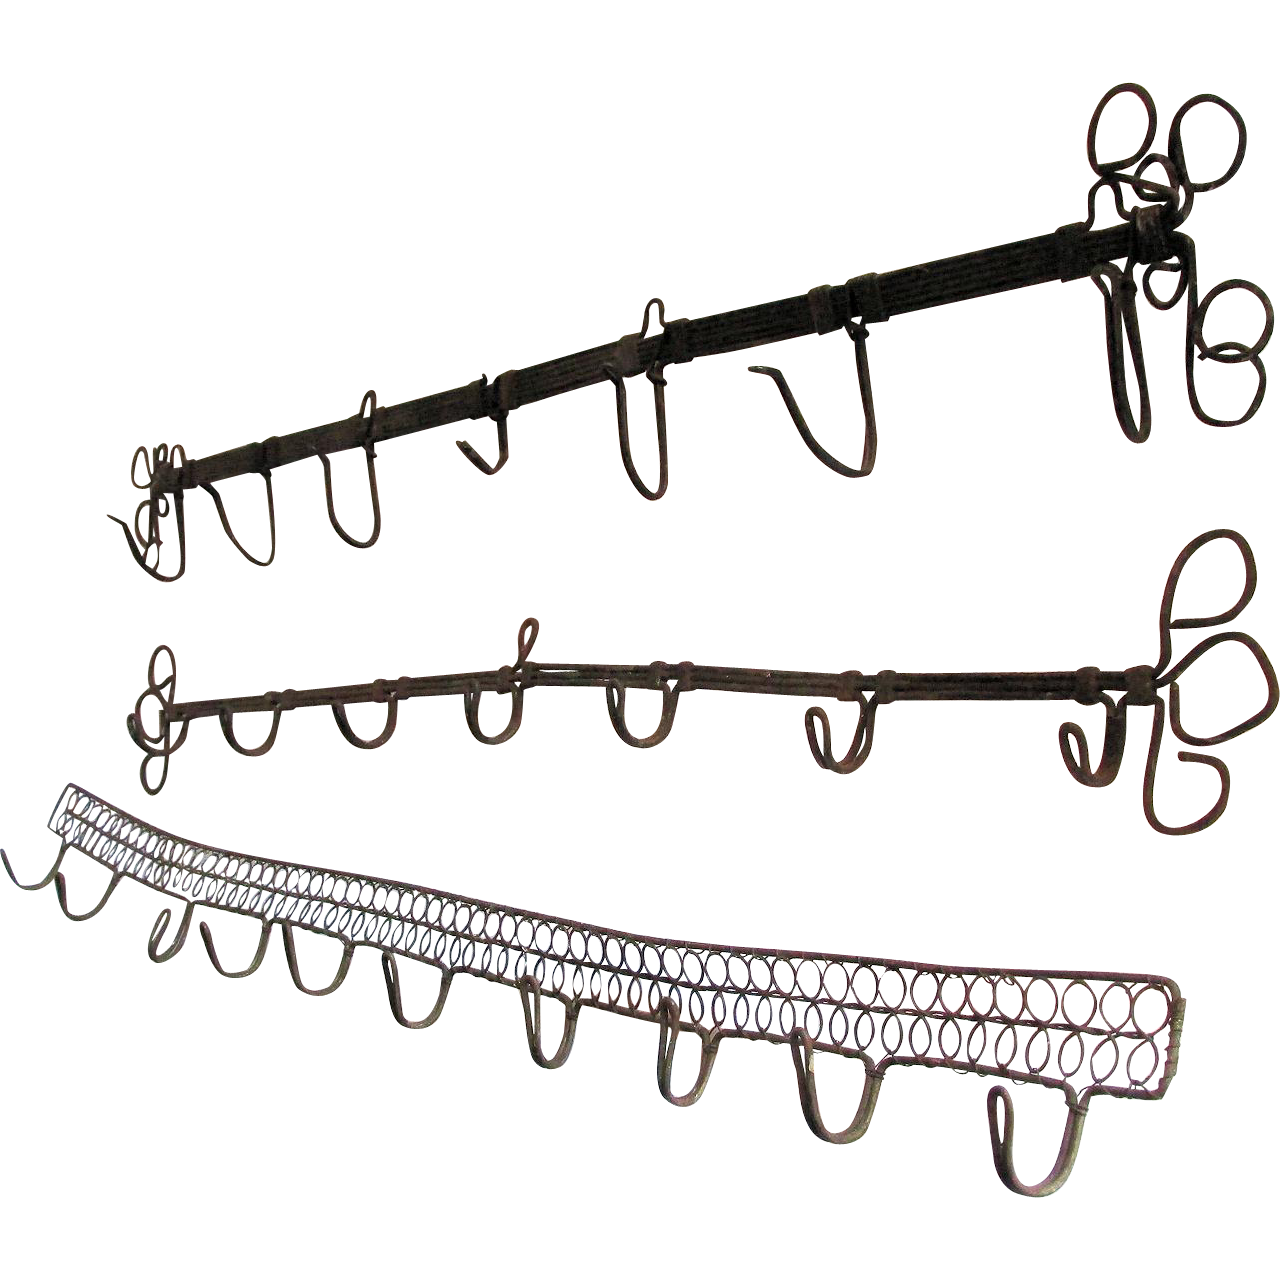 3 Antique European Wireware Racks with Hooks, Architectural